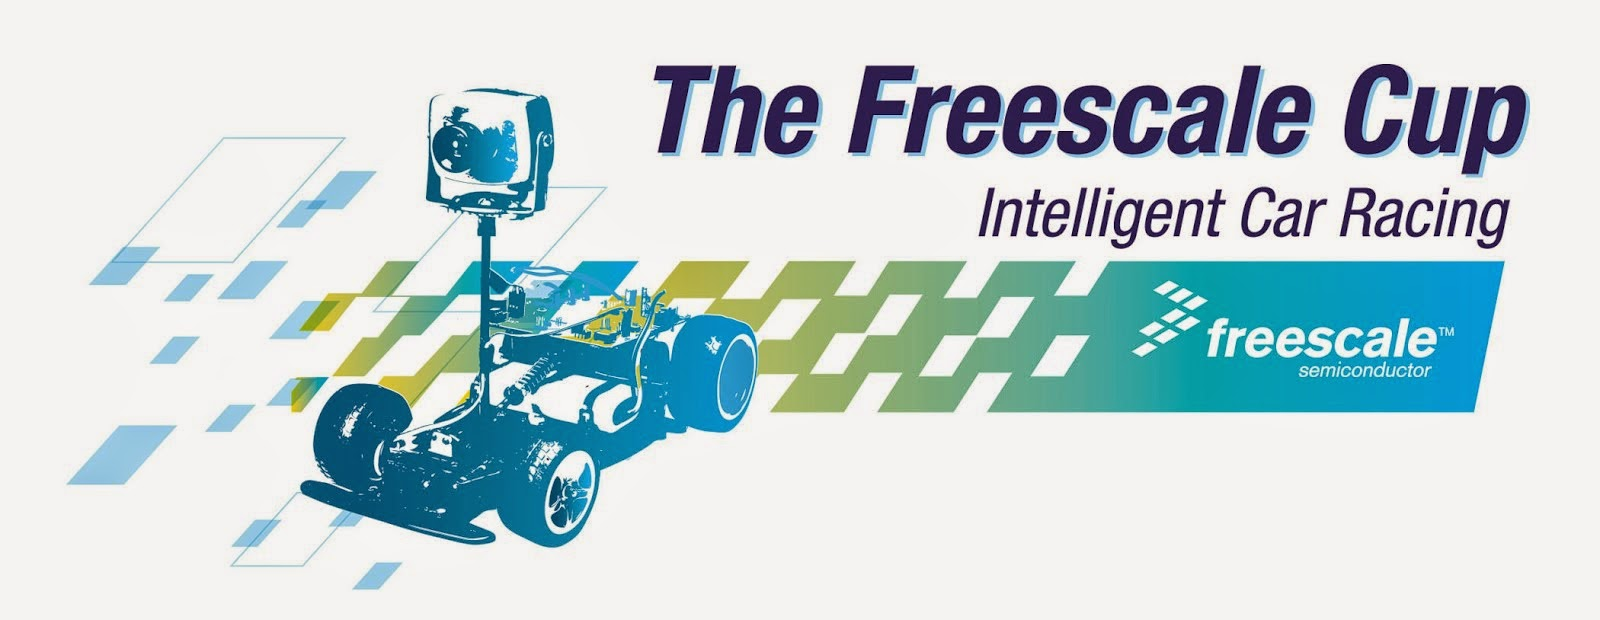 The Freescale Cup